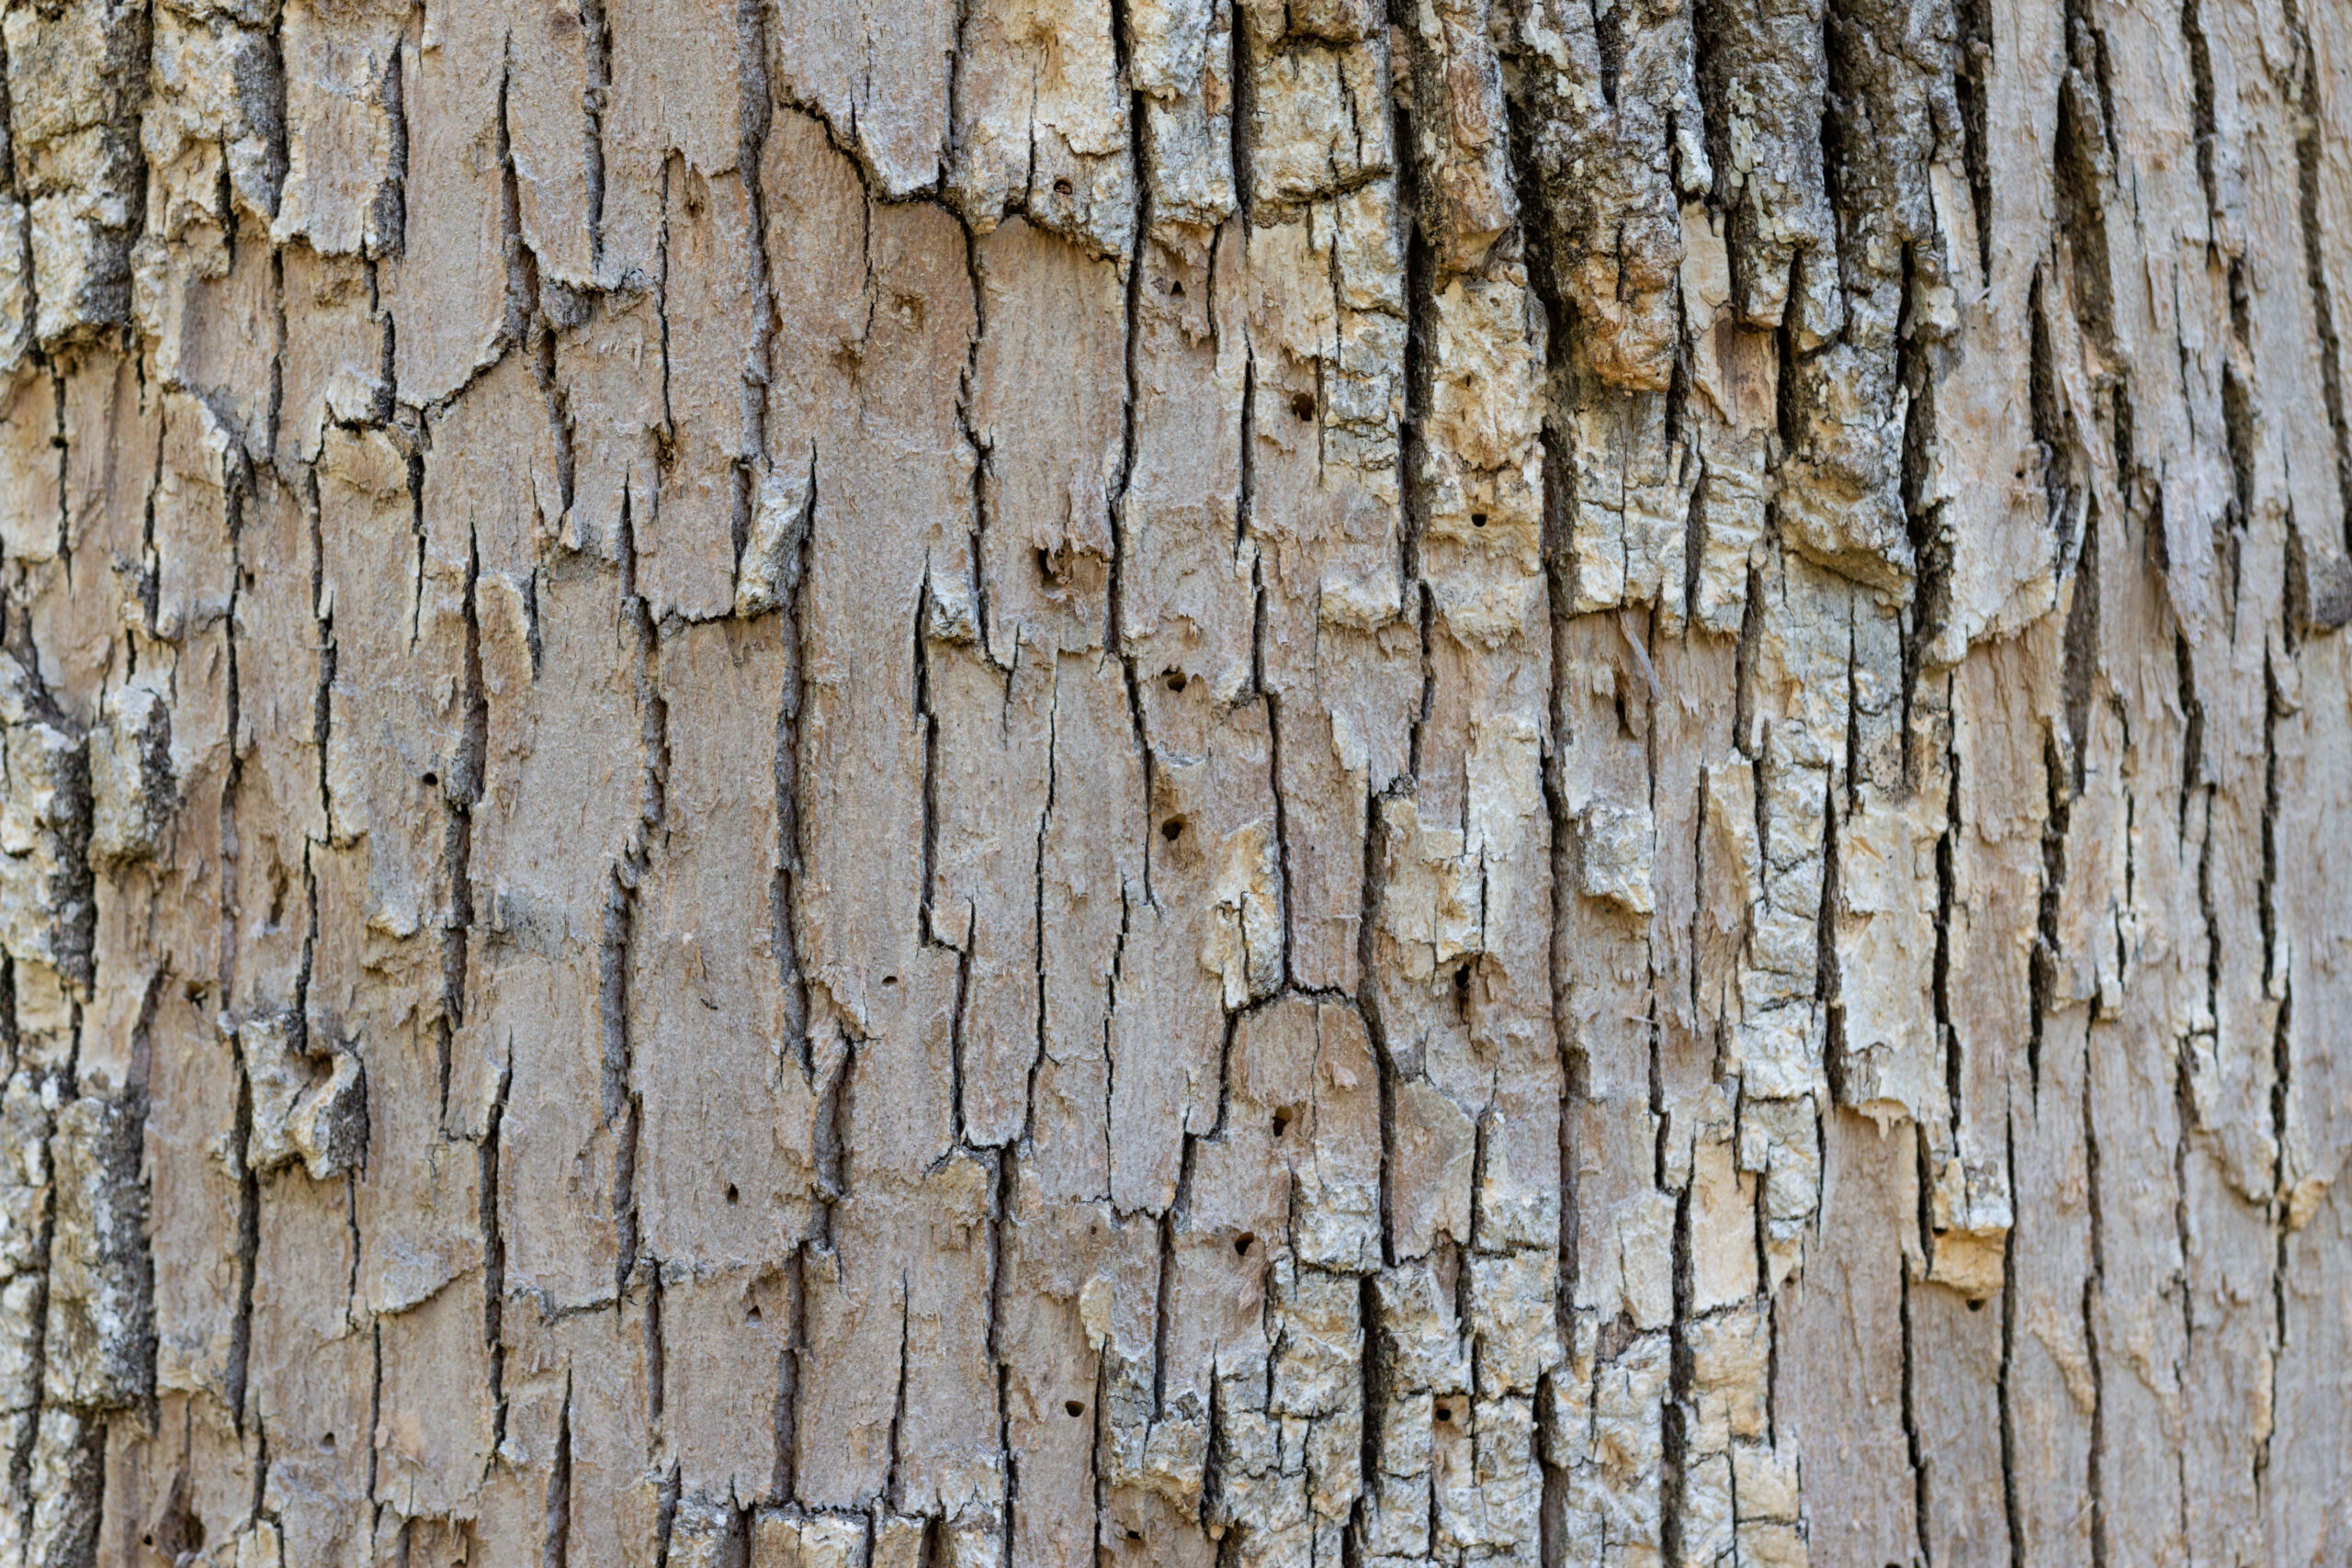 Close Up Of An Ash Tree Infected With EAB